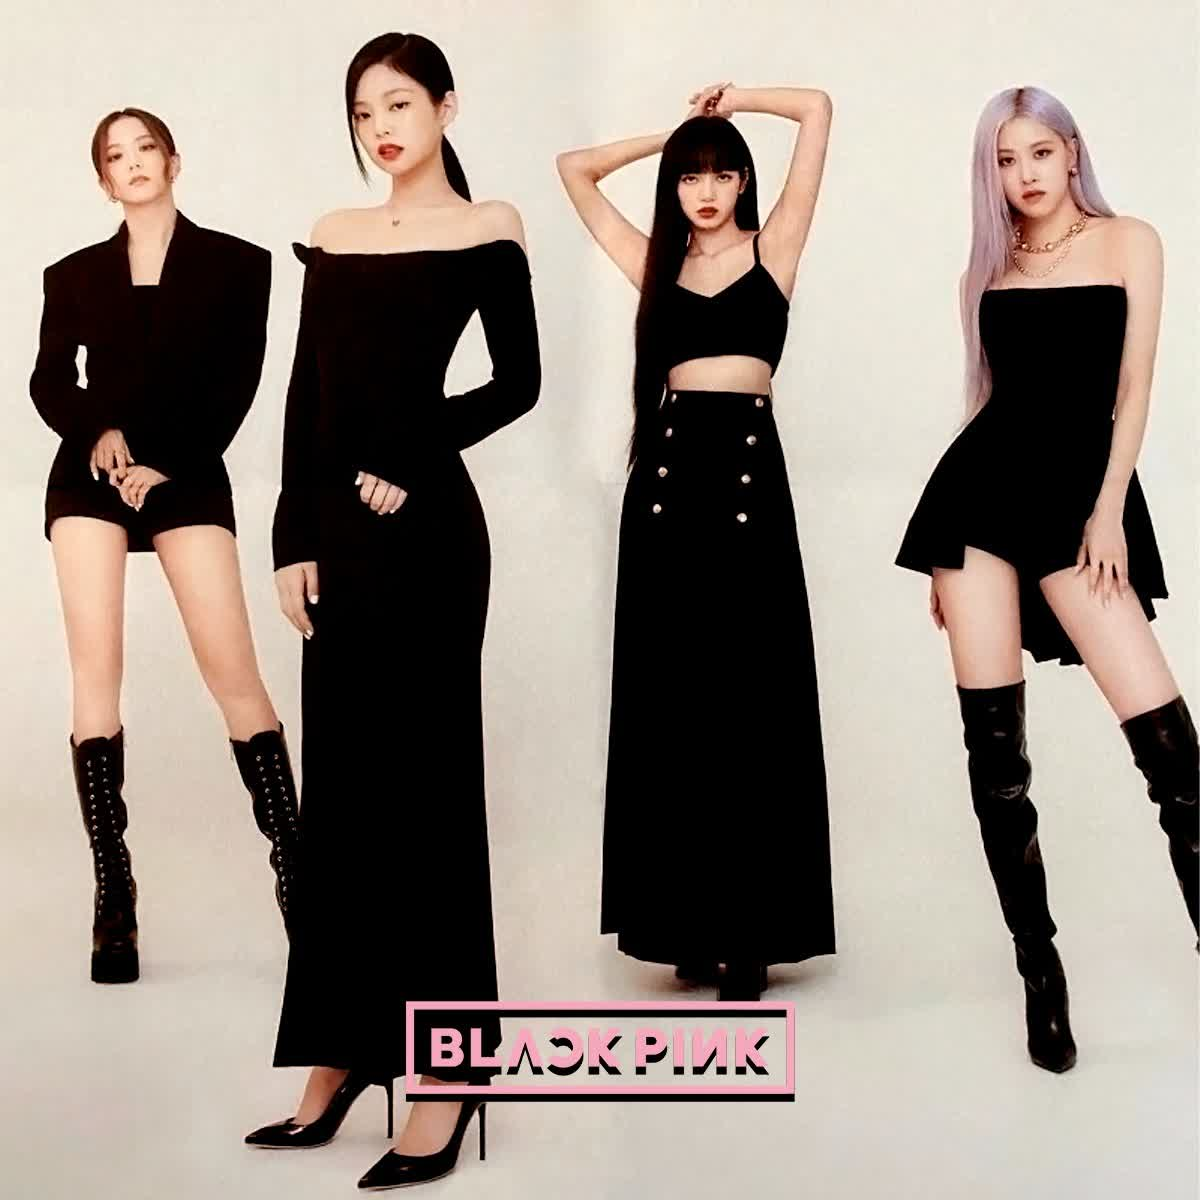 Ready For Love / BLACKPINK (Unofficial Song)